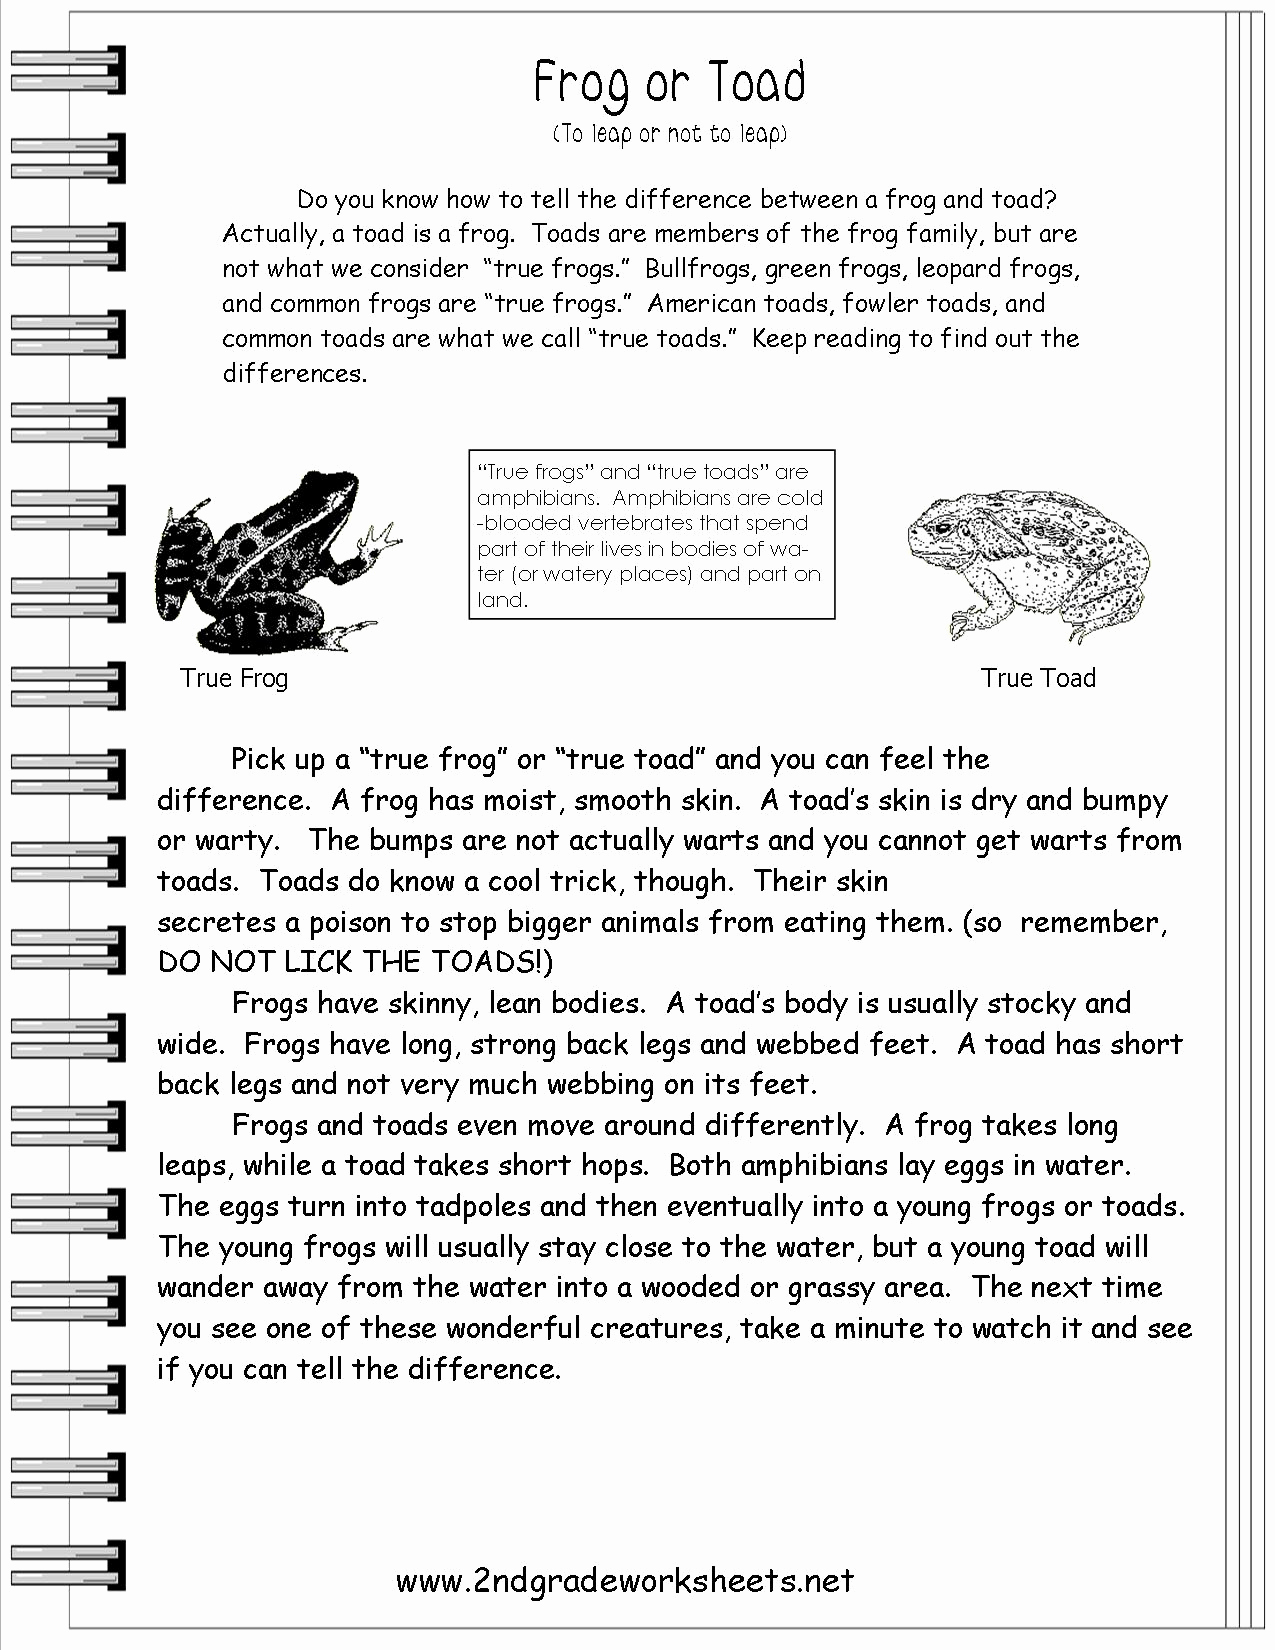 Informational Text Worksheets Middle School Unique Printable Nonfiction Articles for Middle School that are